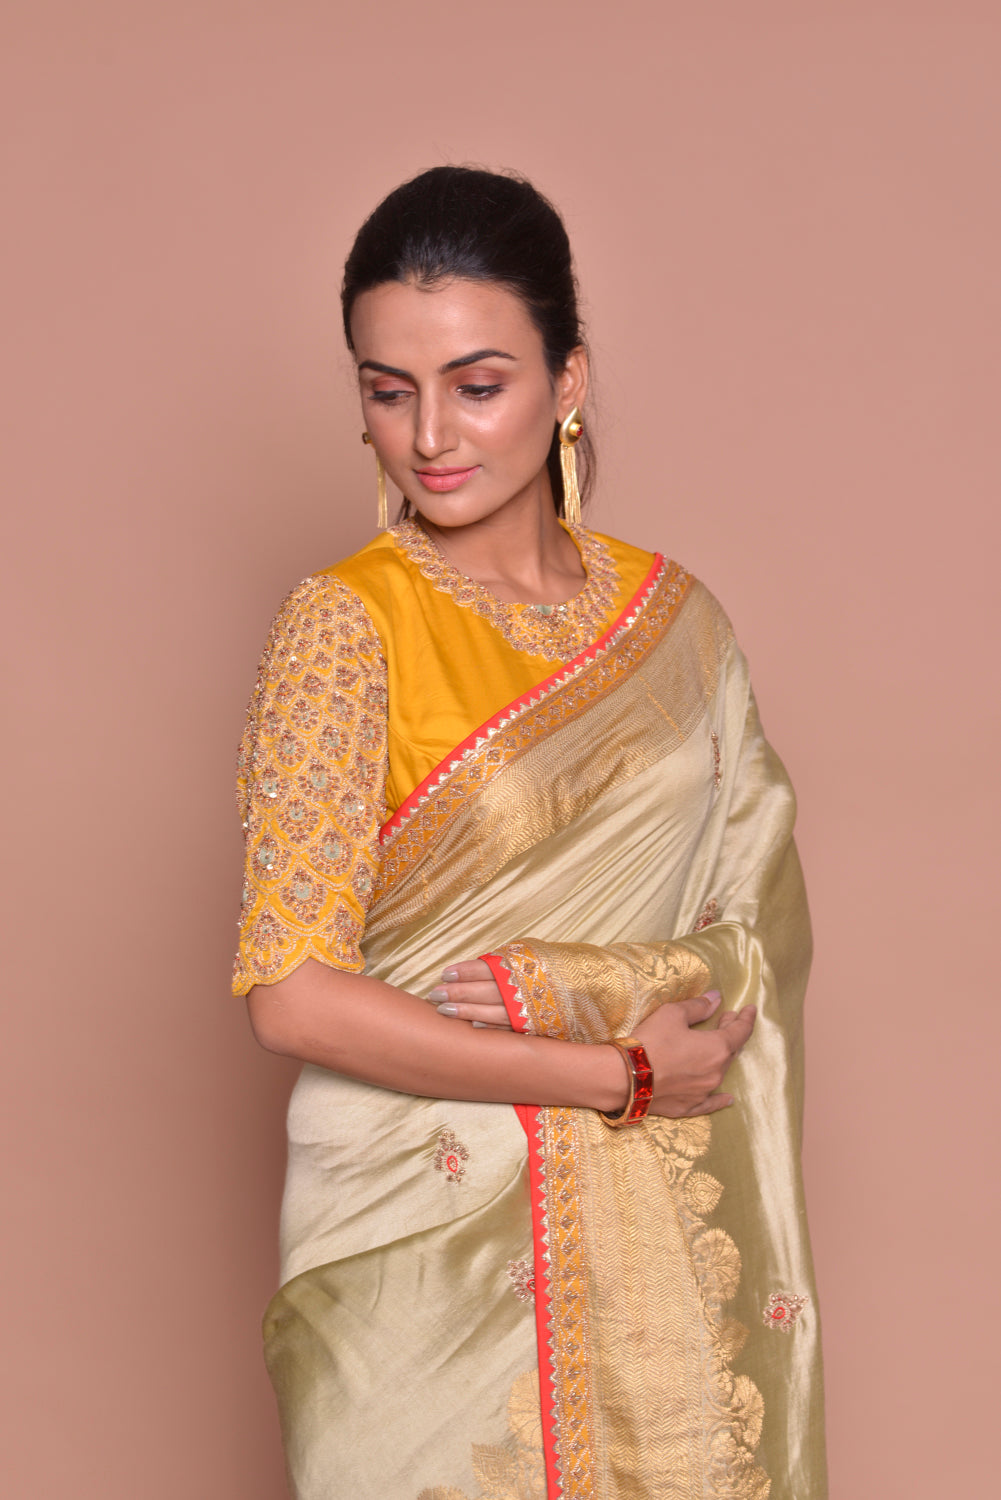 Buy beautiful golden zari border saree online in USA with embroidery and yellow embroidered saree blouse. Be occasion ready with exquisite range of designer sarees with blouse, bridal sarees from Pure Elegance Indian boutique in USA.-closeup